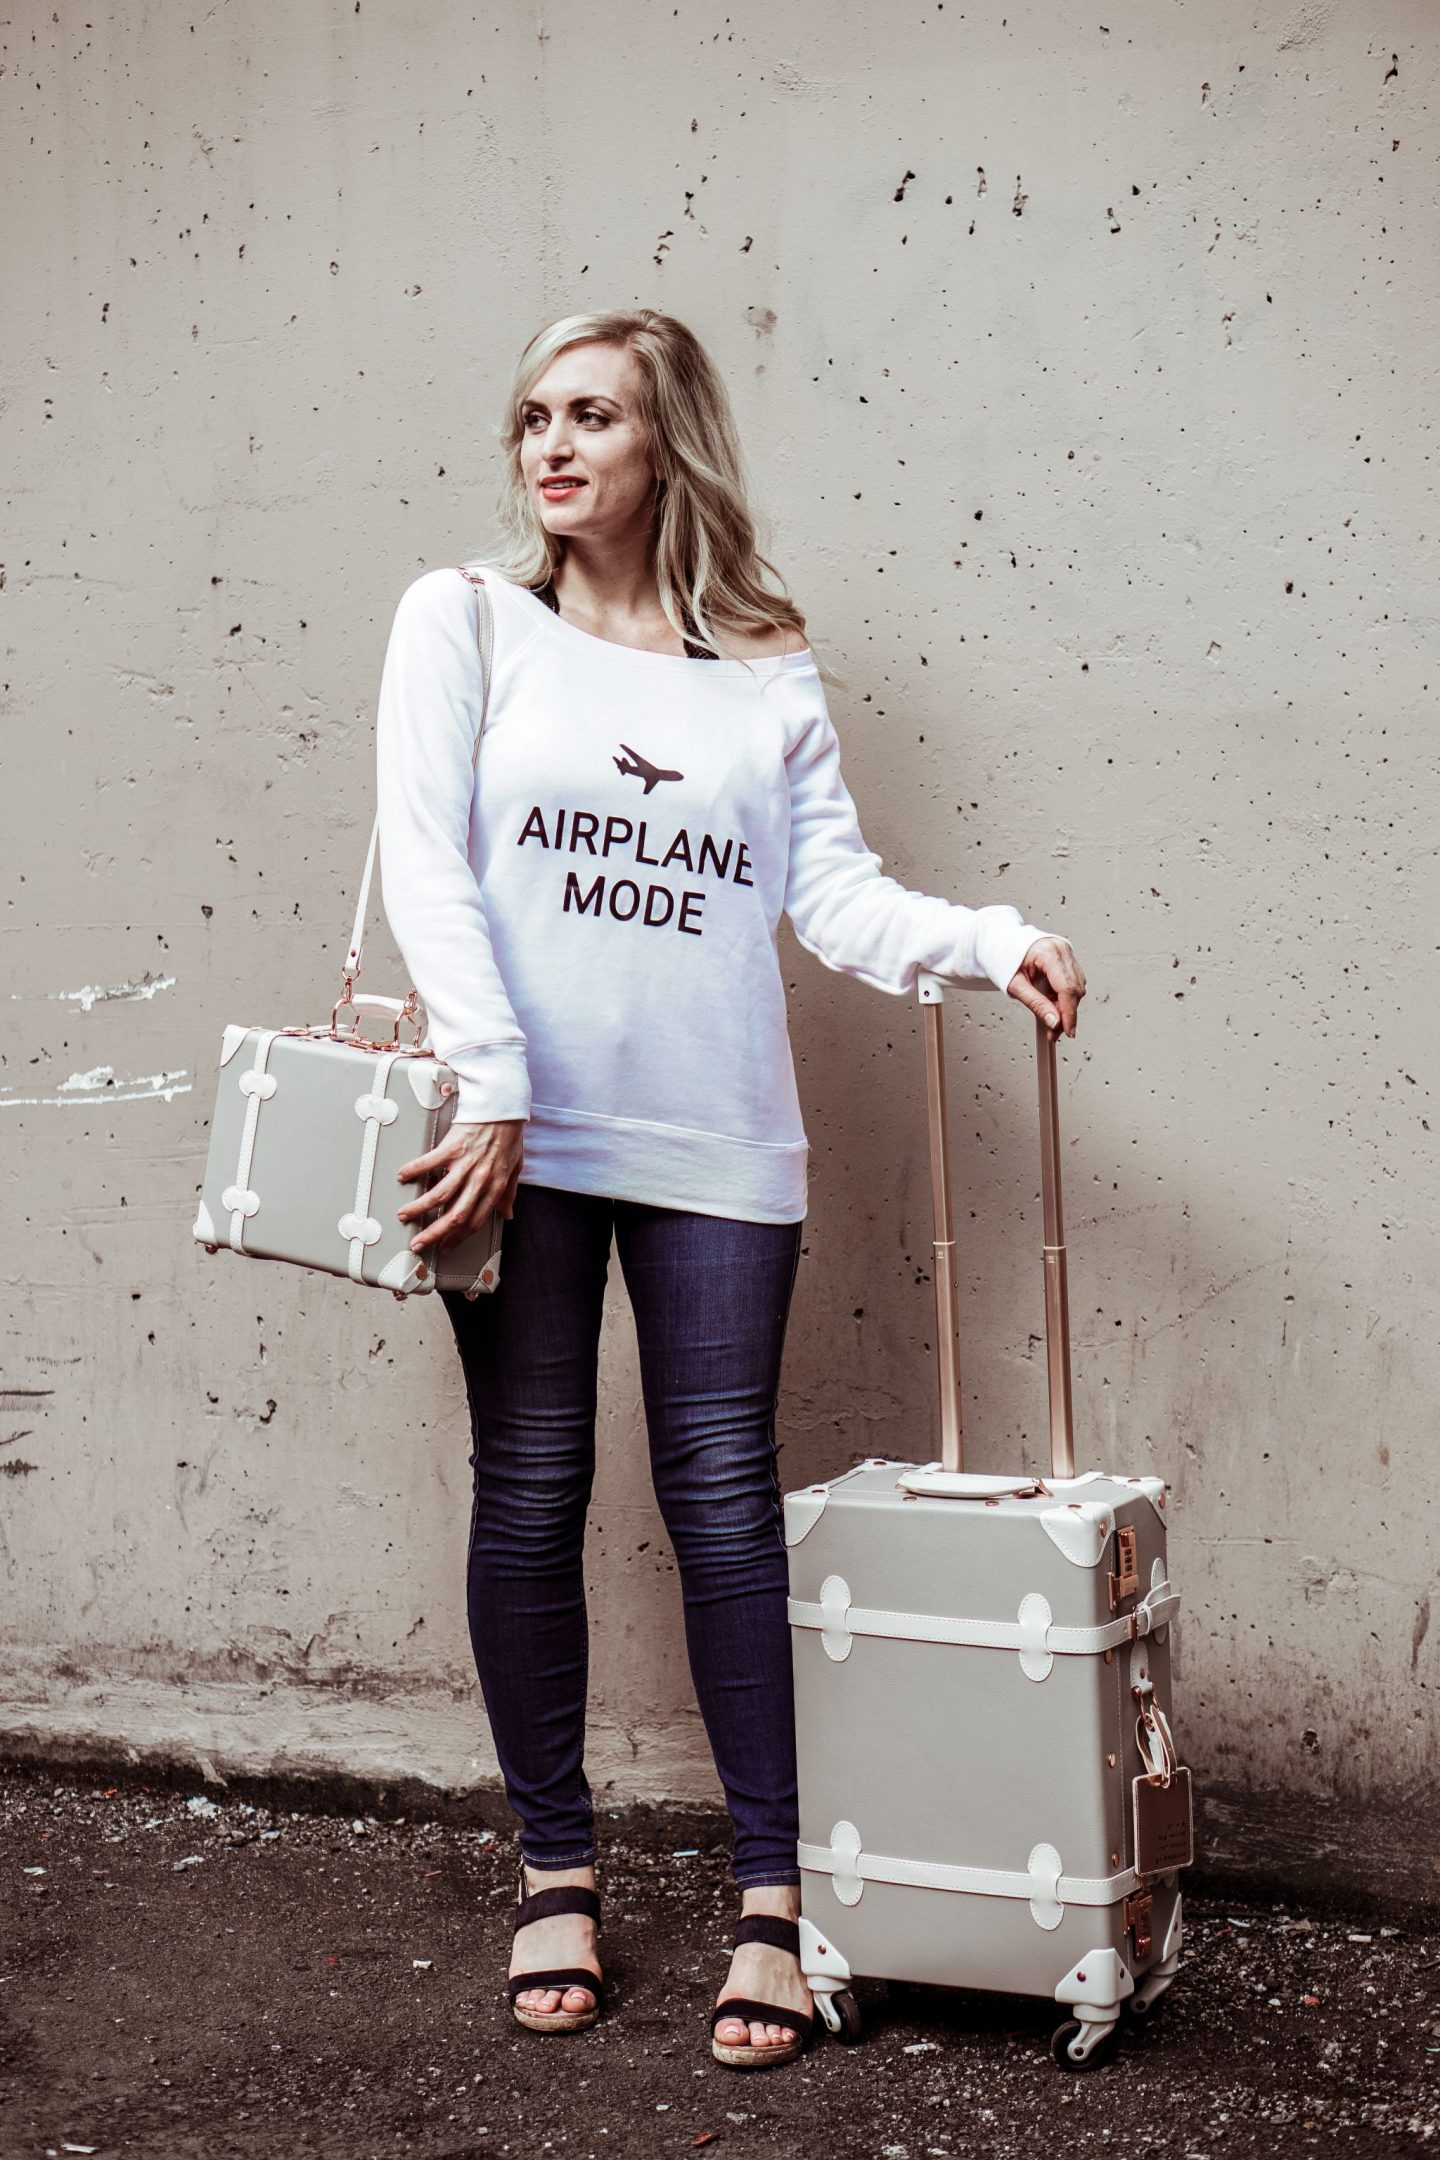 airplane mode sweater and dove grey vintage luggage